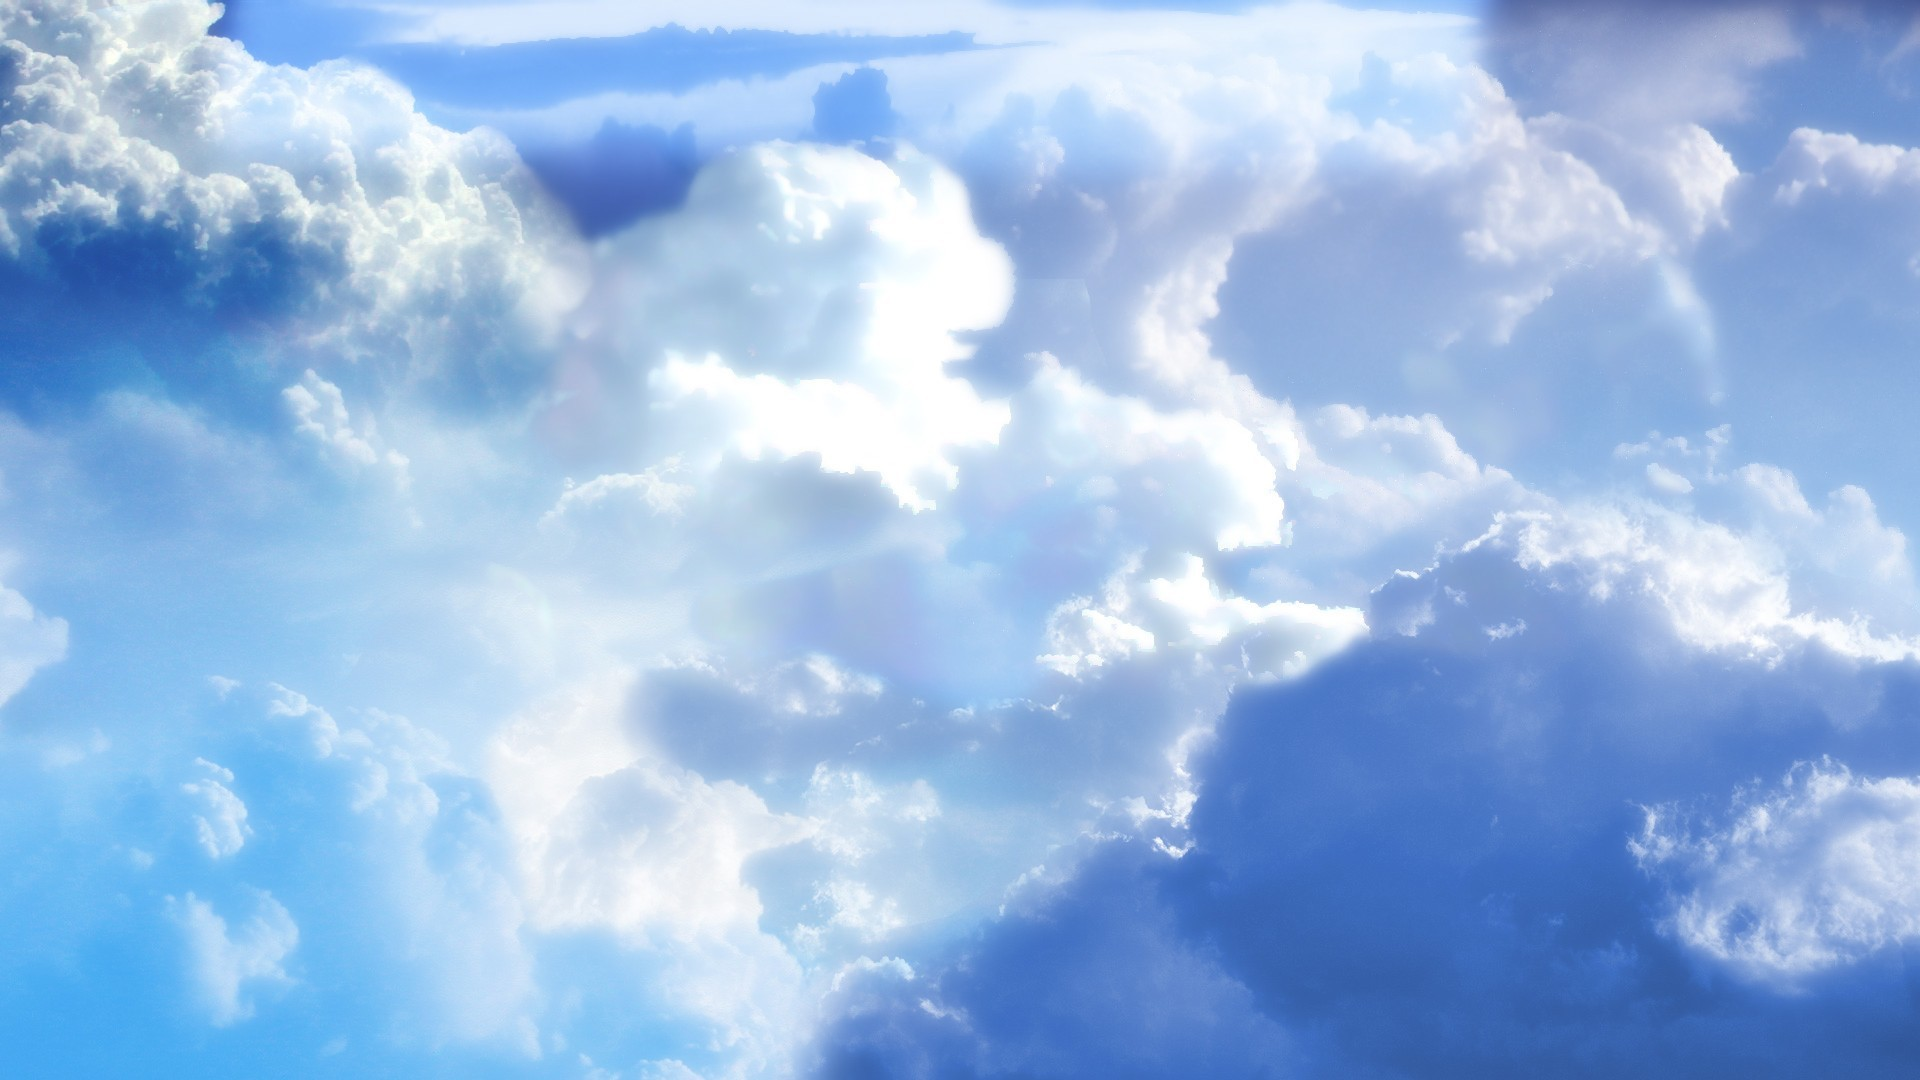 Sky Hd Wallpapers: Sky And Clouds Wallpaper